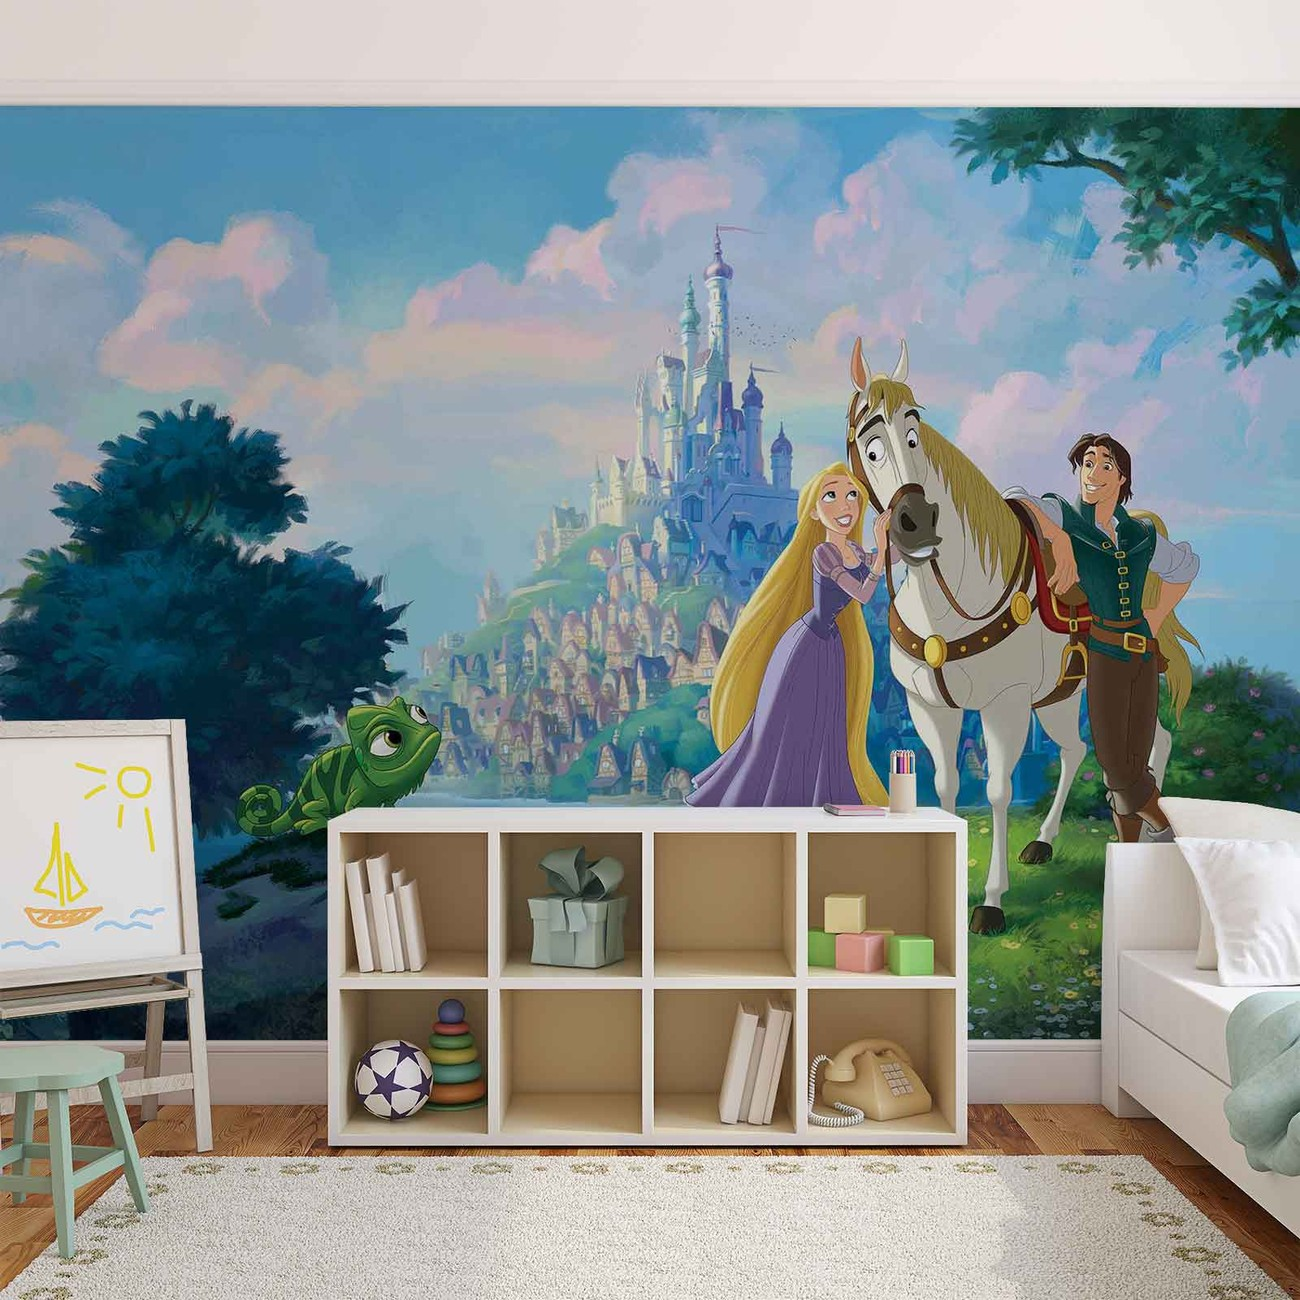 Disney princesses rapunzel wall paper mural buy at for Disney wall mural uk